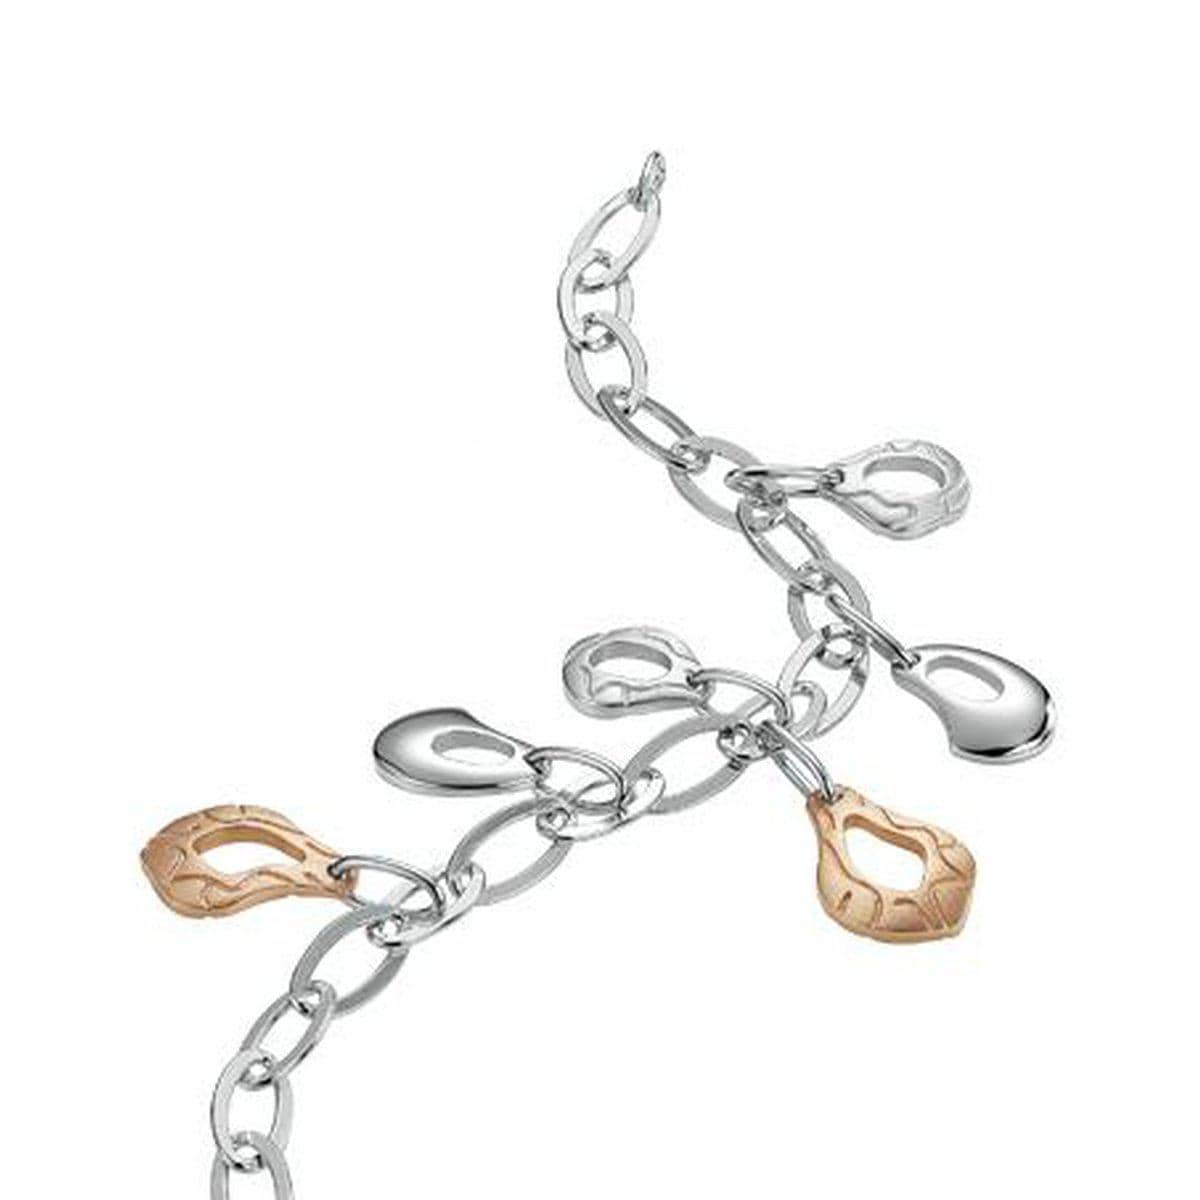 Rose Gold Plated Sterling Silver Chain Bracelet - 54/00776-Breuning-Renee Taylor Gallery